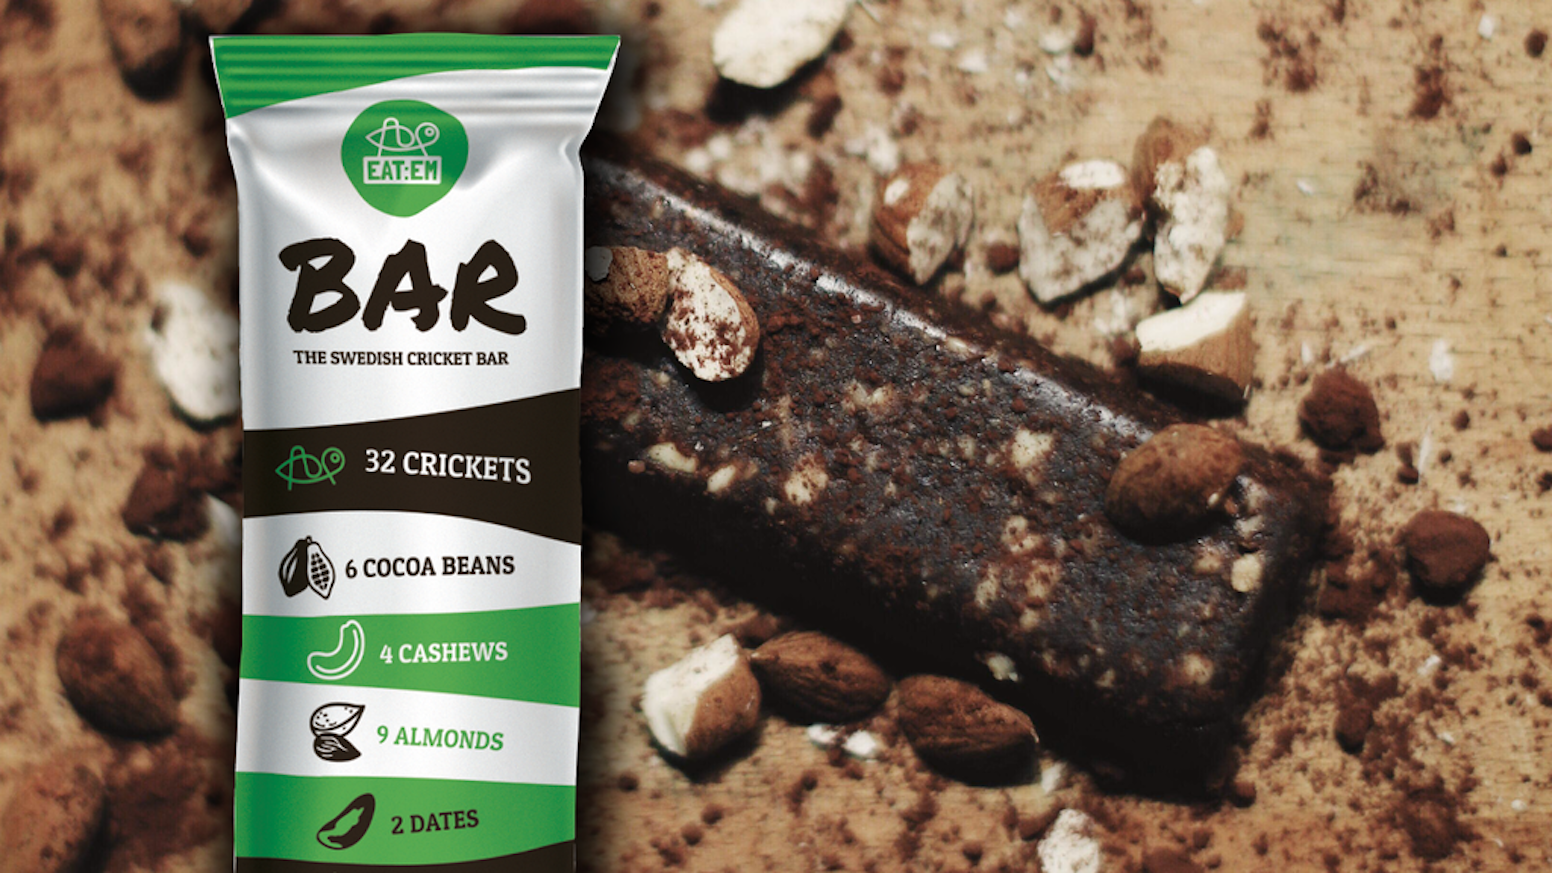 A bar made of 32 crickets, 6 cocoa beans, 4 cashews, 9 almonds, 2 dates and coconut oil. Simple, tasty & healthy!